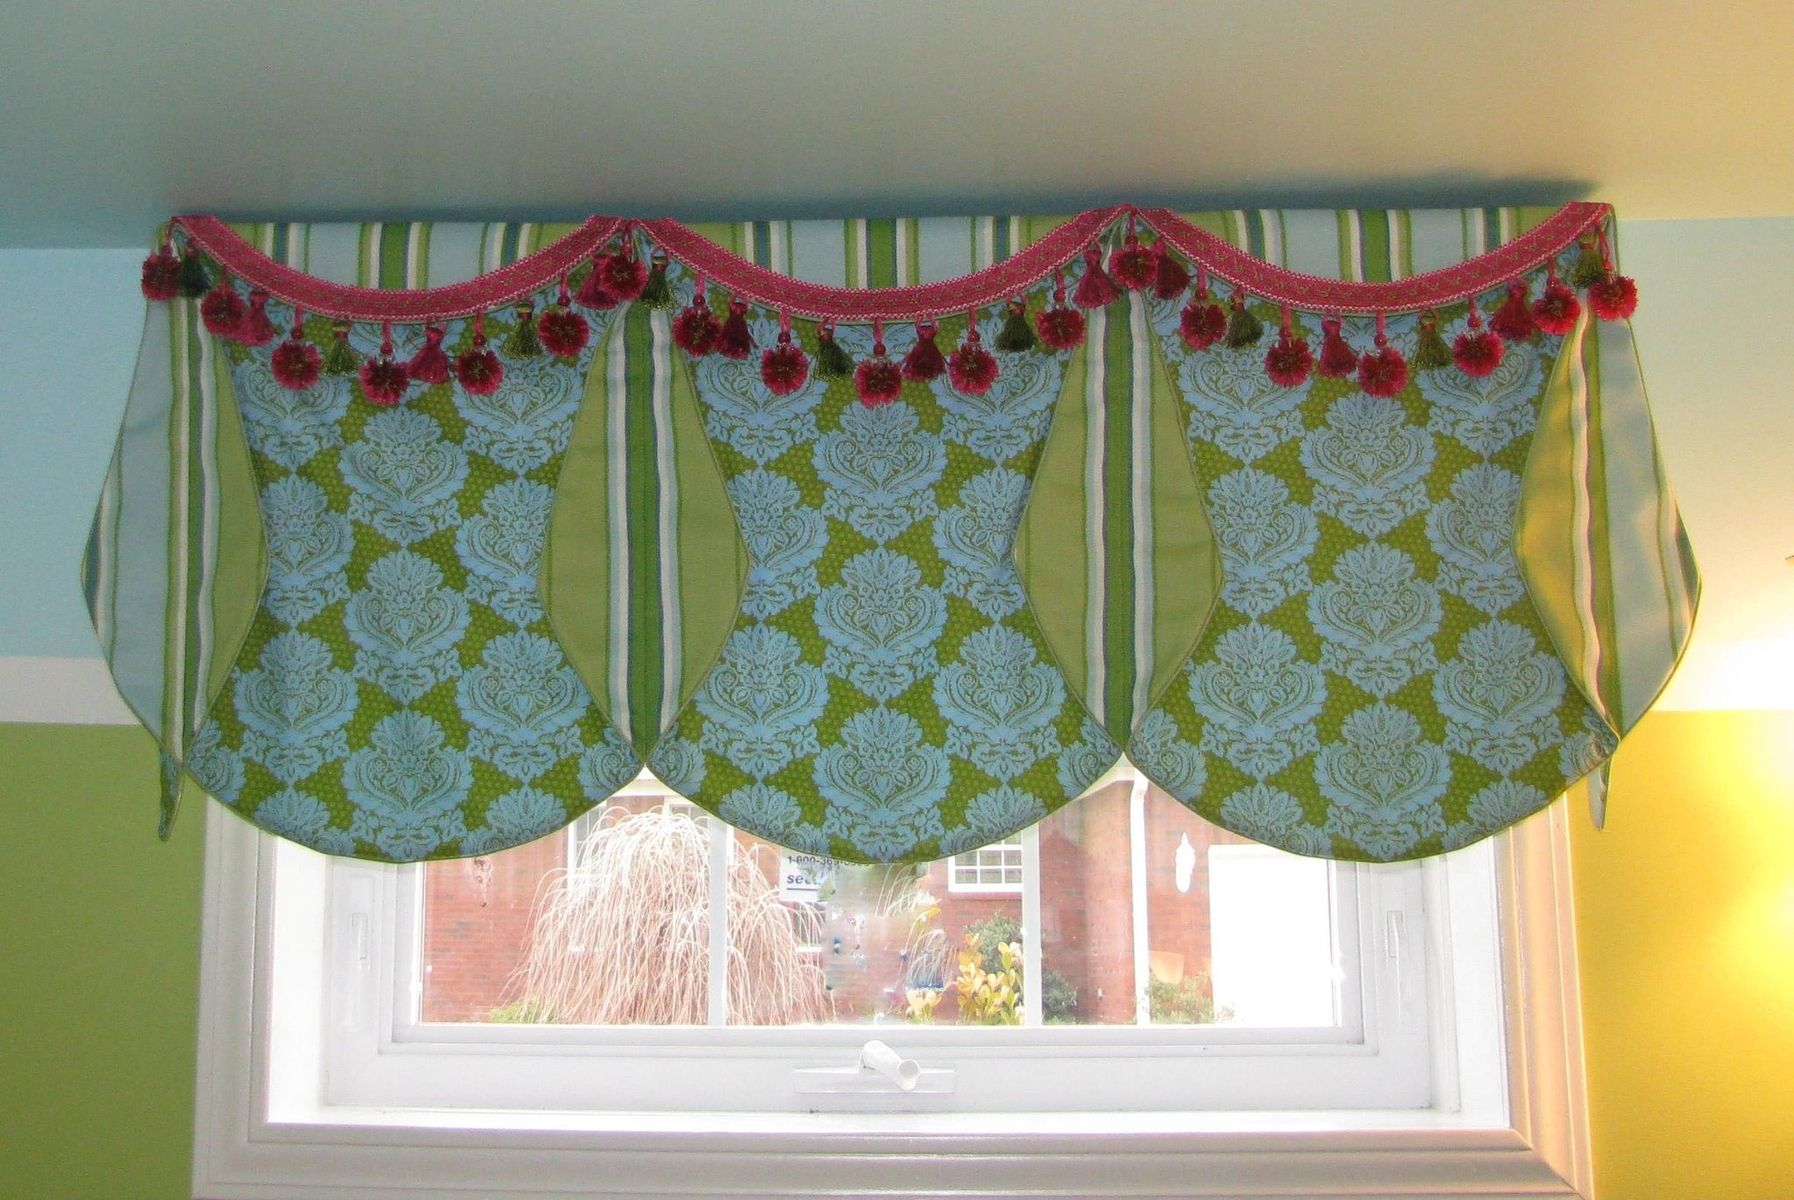 Bedroom Valance Ideas Bedroom Window Valance Ideas Welcome To Custommade A